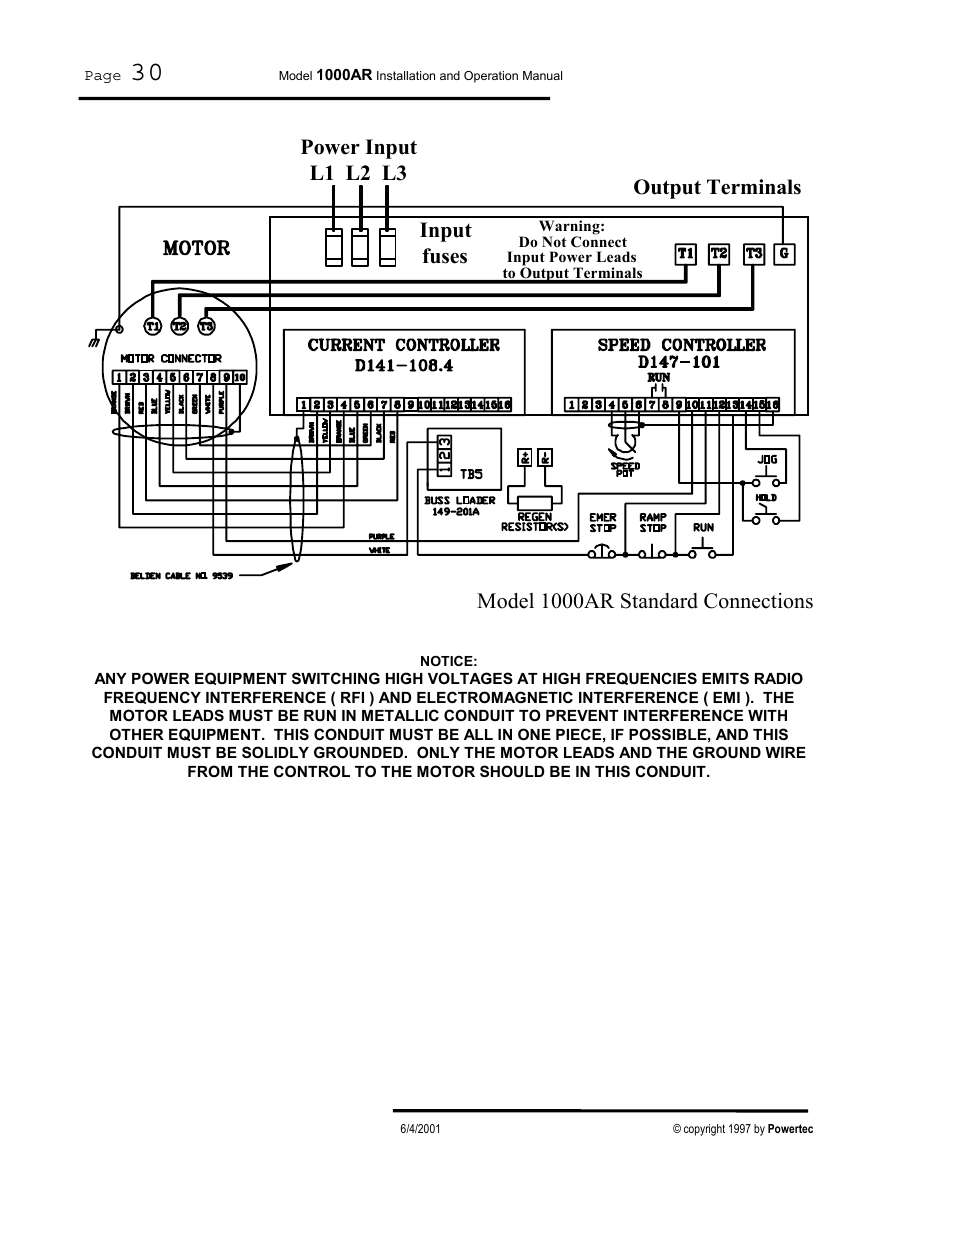 hight resolution of output terminals power input l1 l2 l3 input fuses model 1000ar standard connections